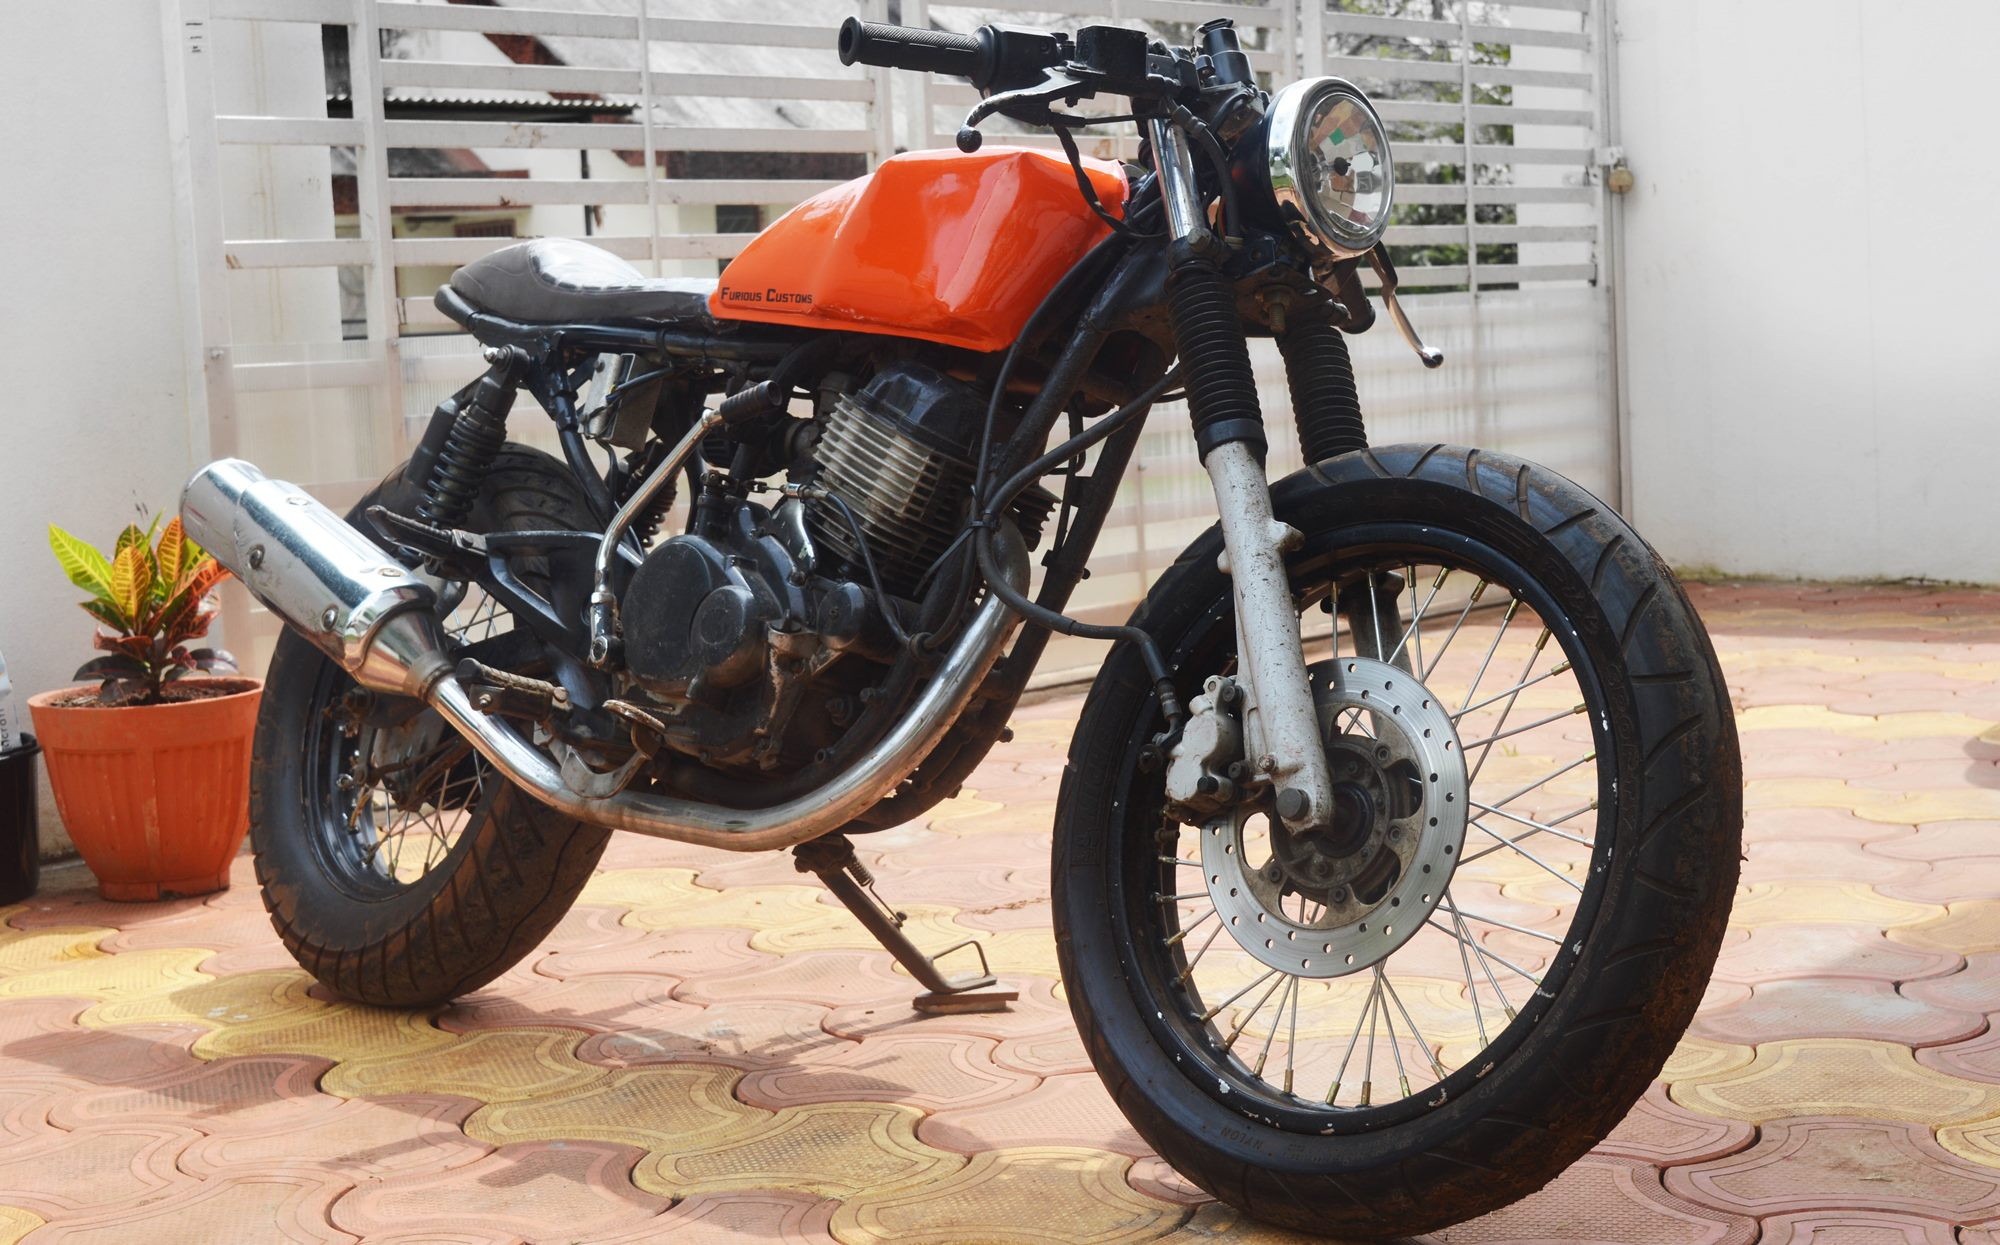 bajaj-pulsar-150-cafe-racer-modification-by-furious-customs-maharashtra